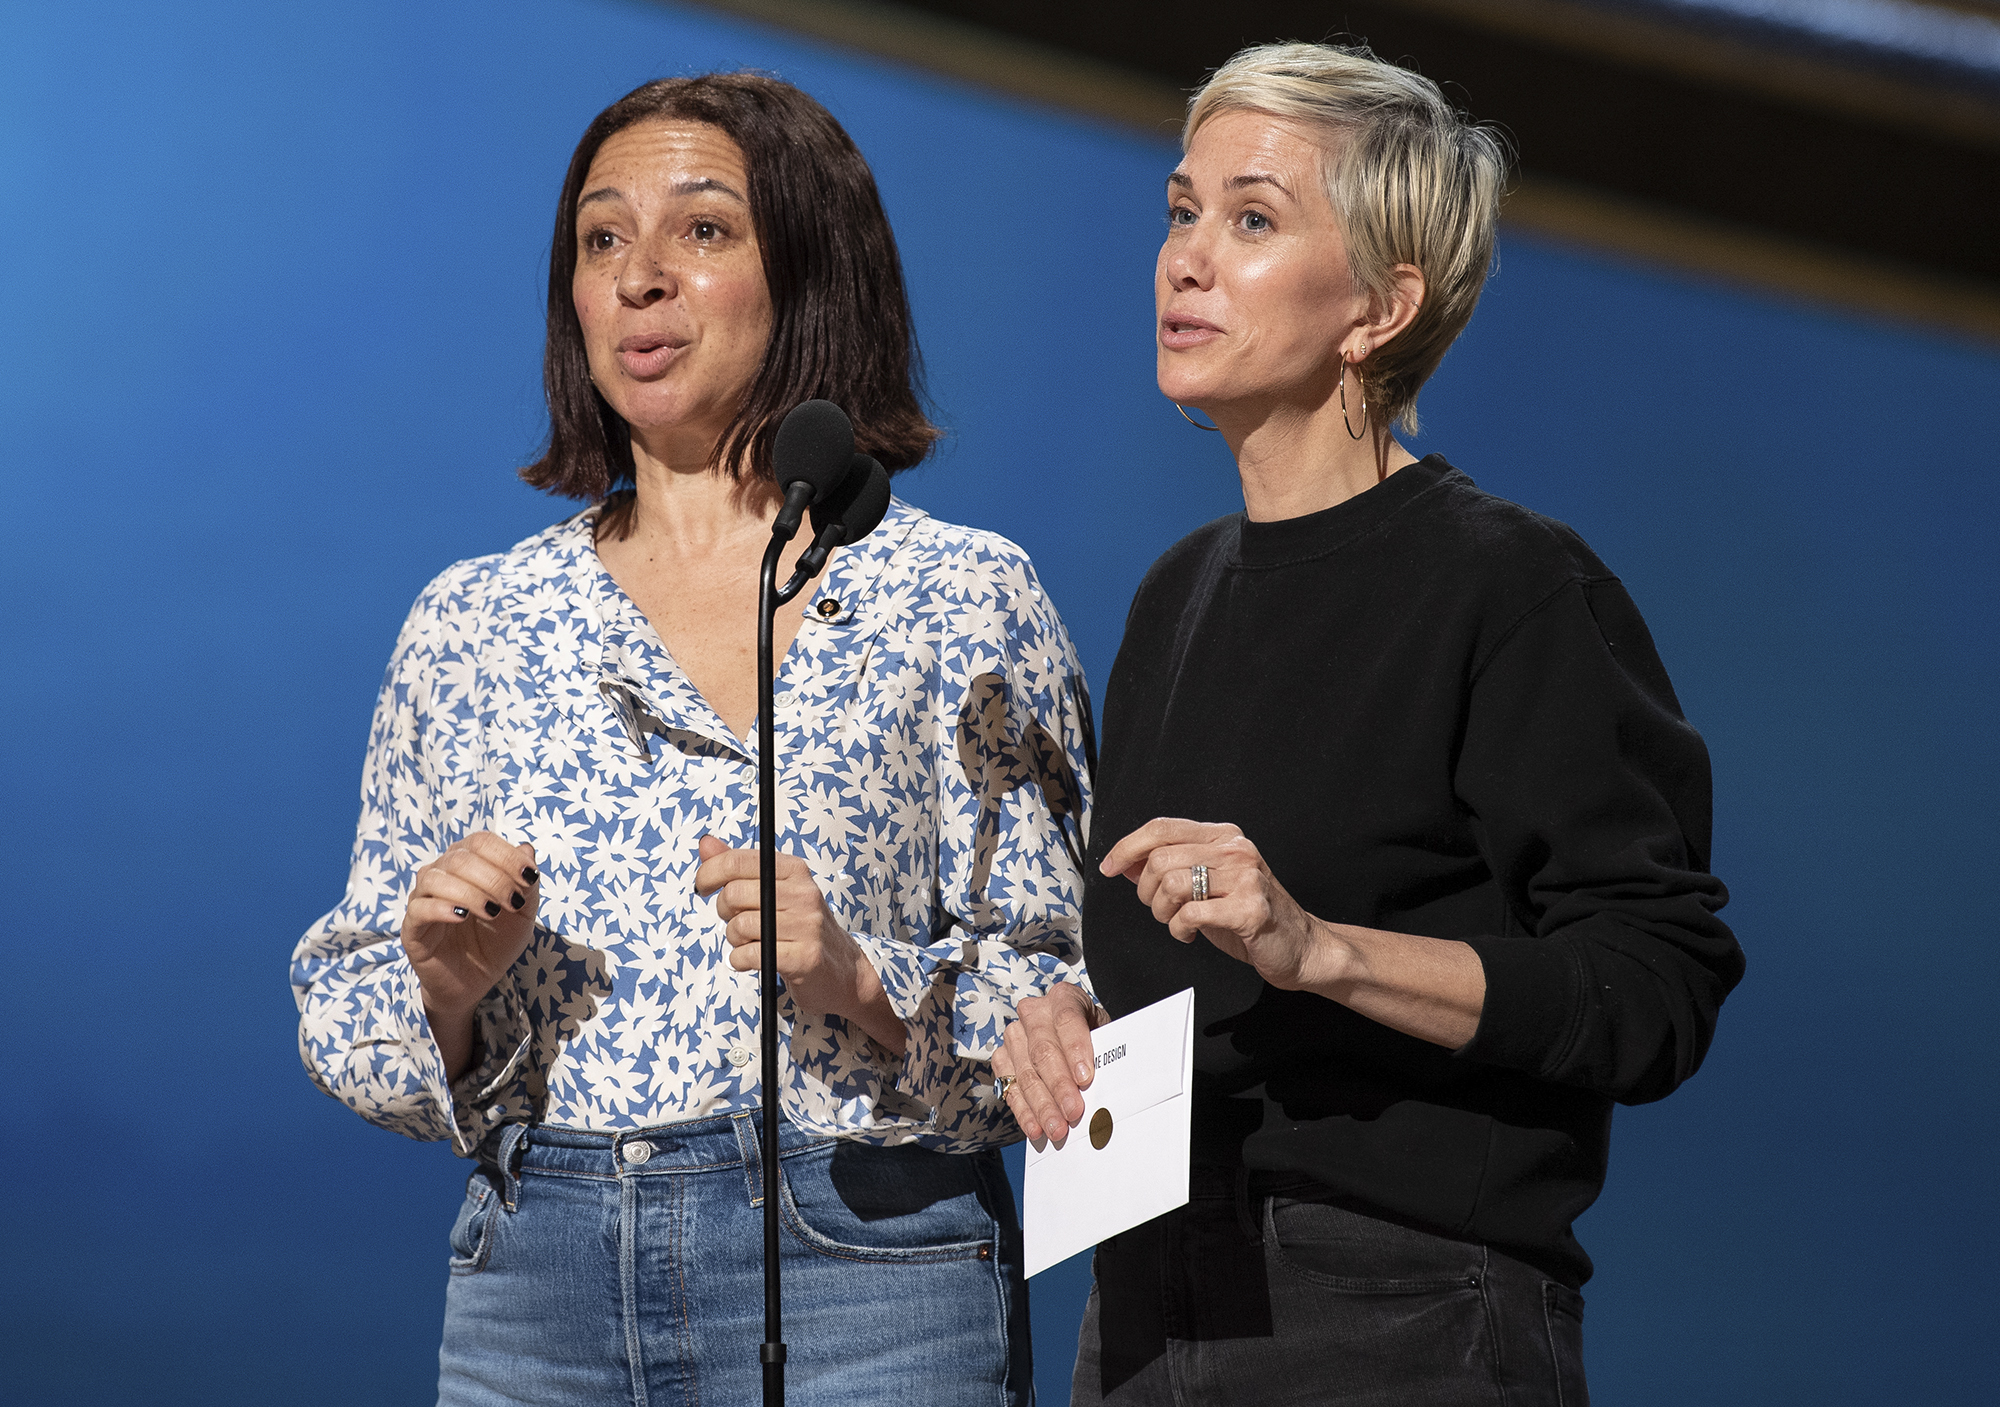 Kristen Wiig and Maya Rudolph Together at the Oscars Rehearsal!